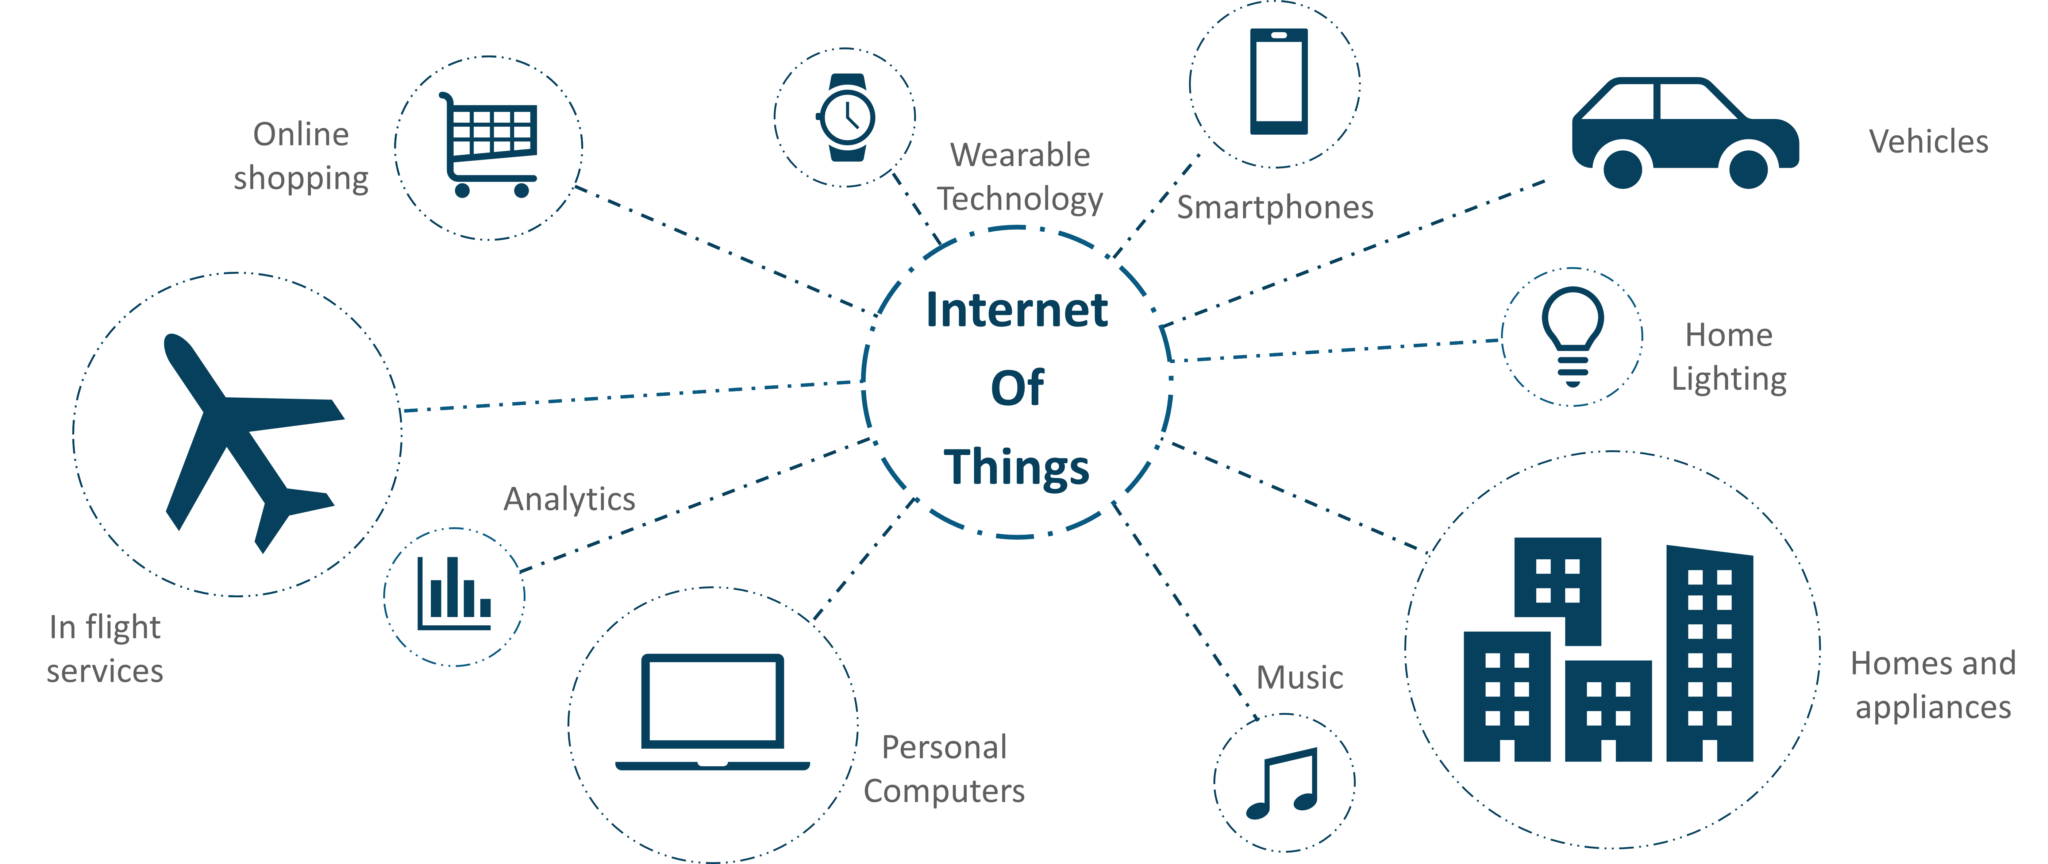 IoT Applications | Internet Of Things Examples | Real World IoT